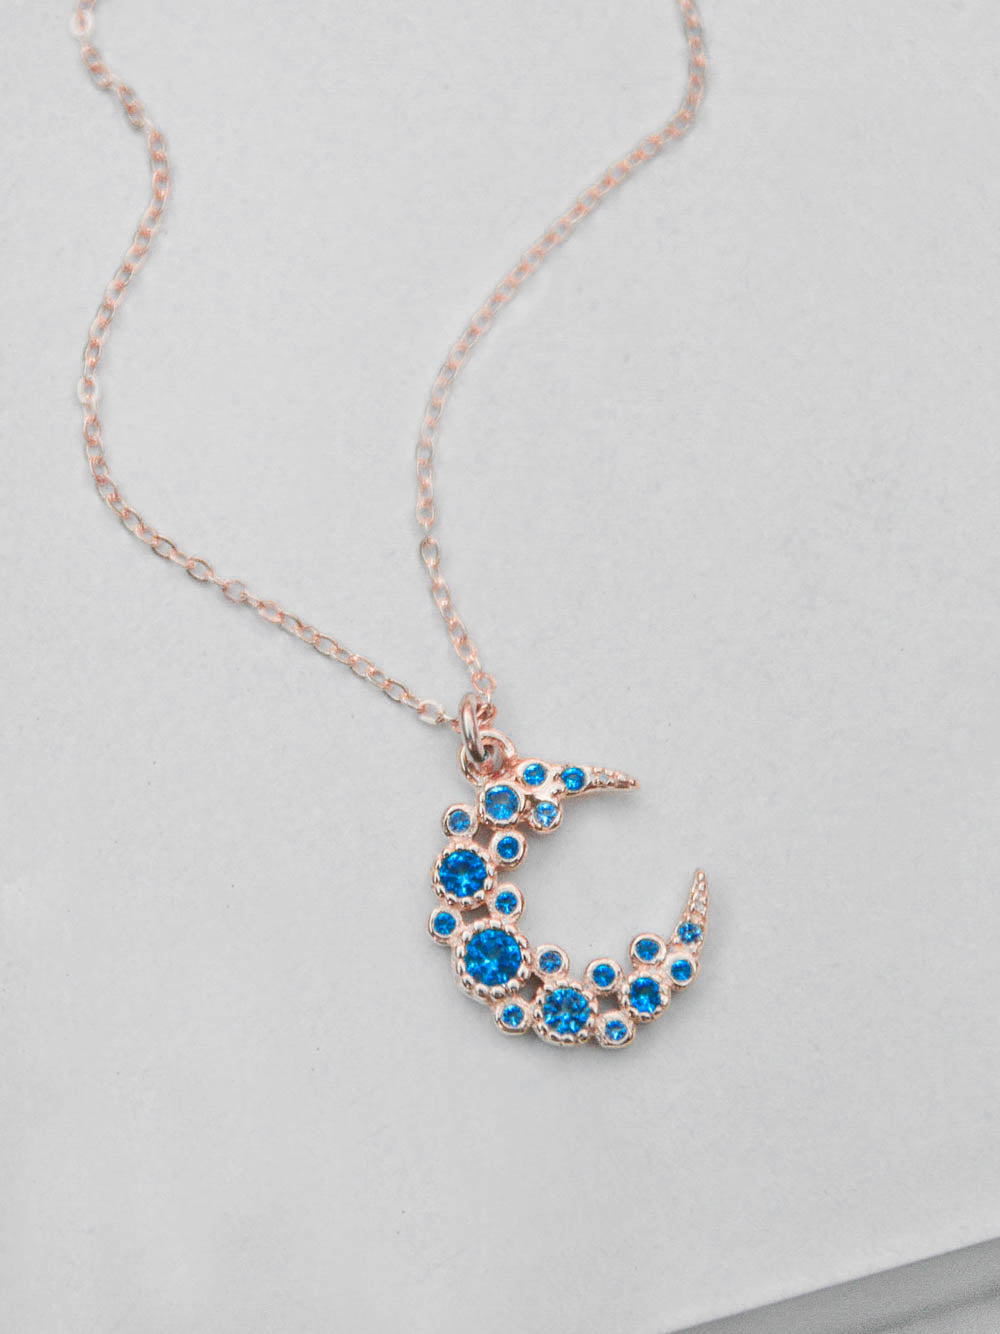 Blue Cluster Moon CZ Charm Rose Gold Necklace  by The Faint Hearted Jewelry